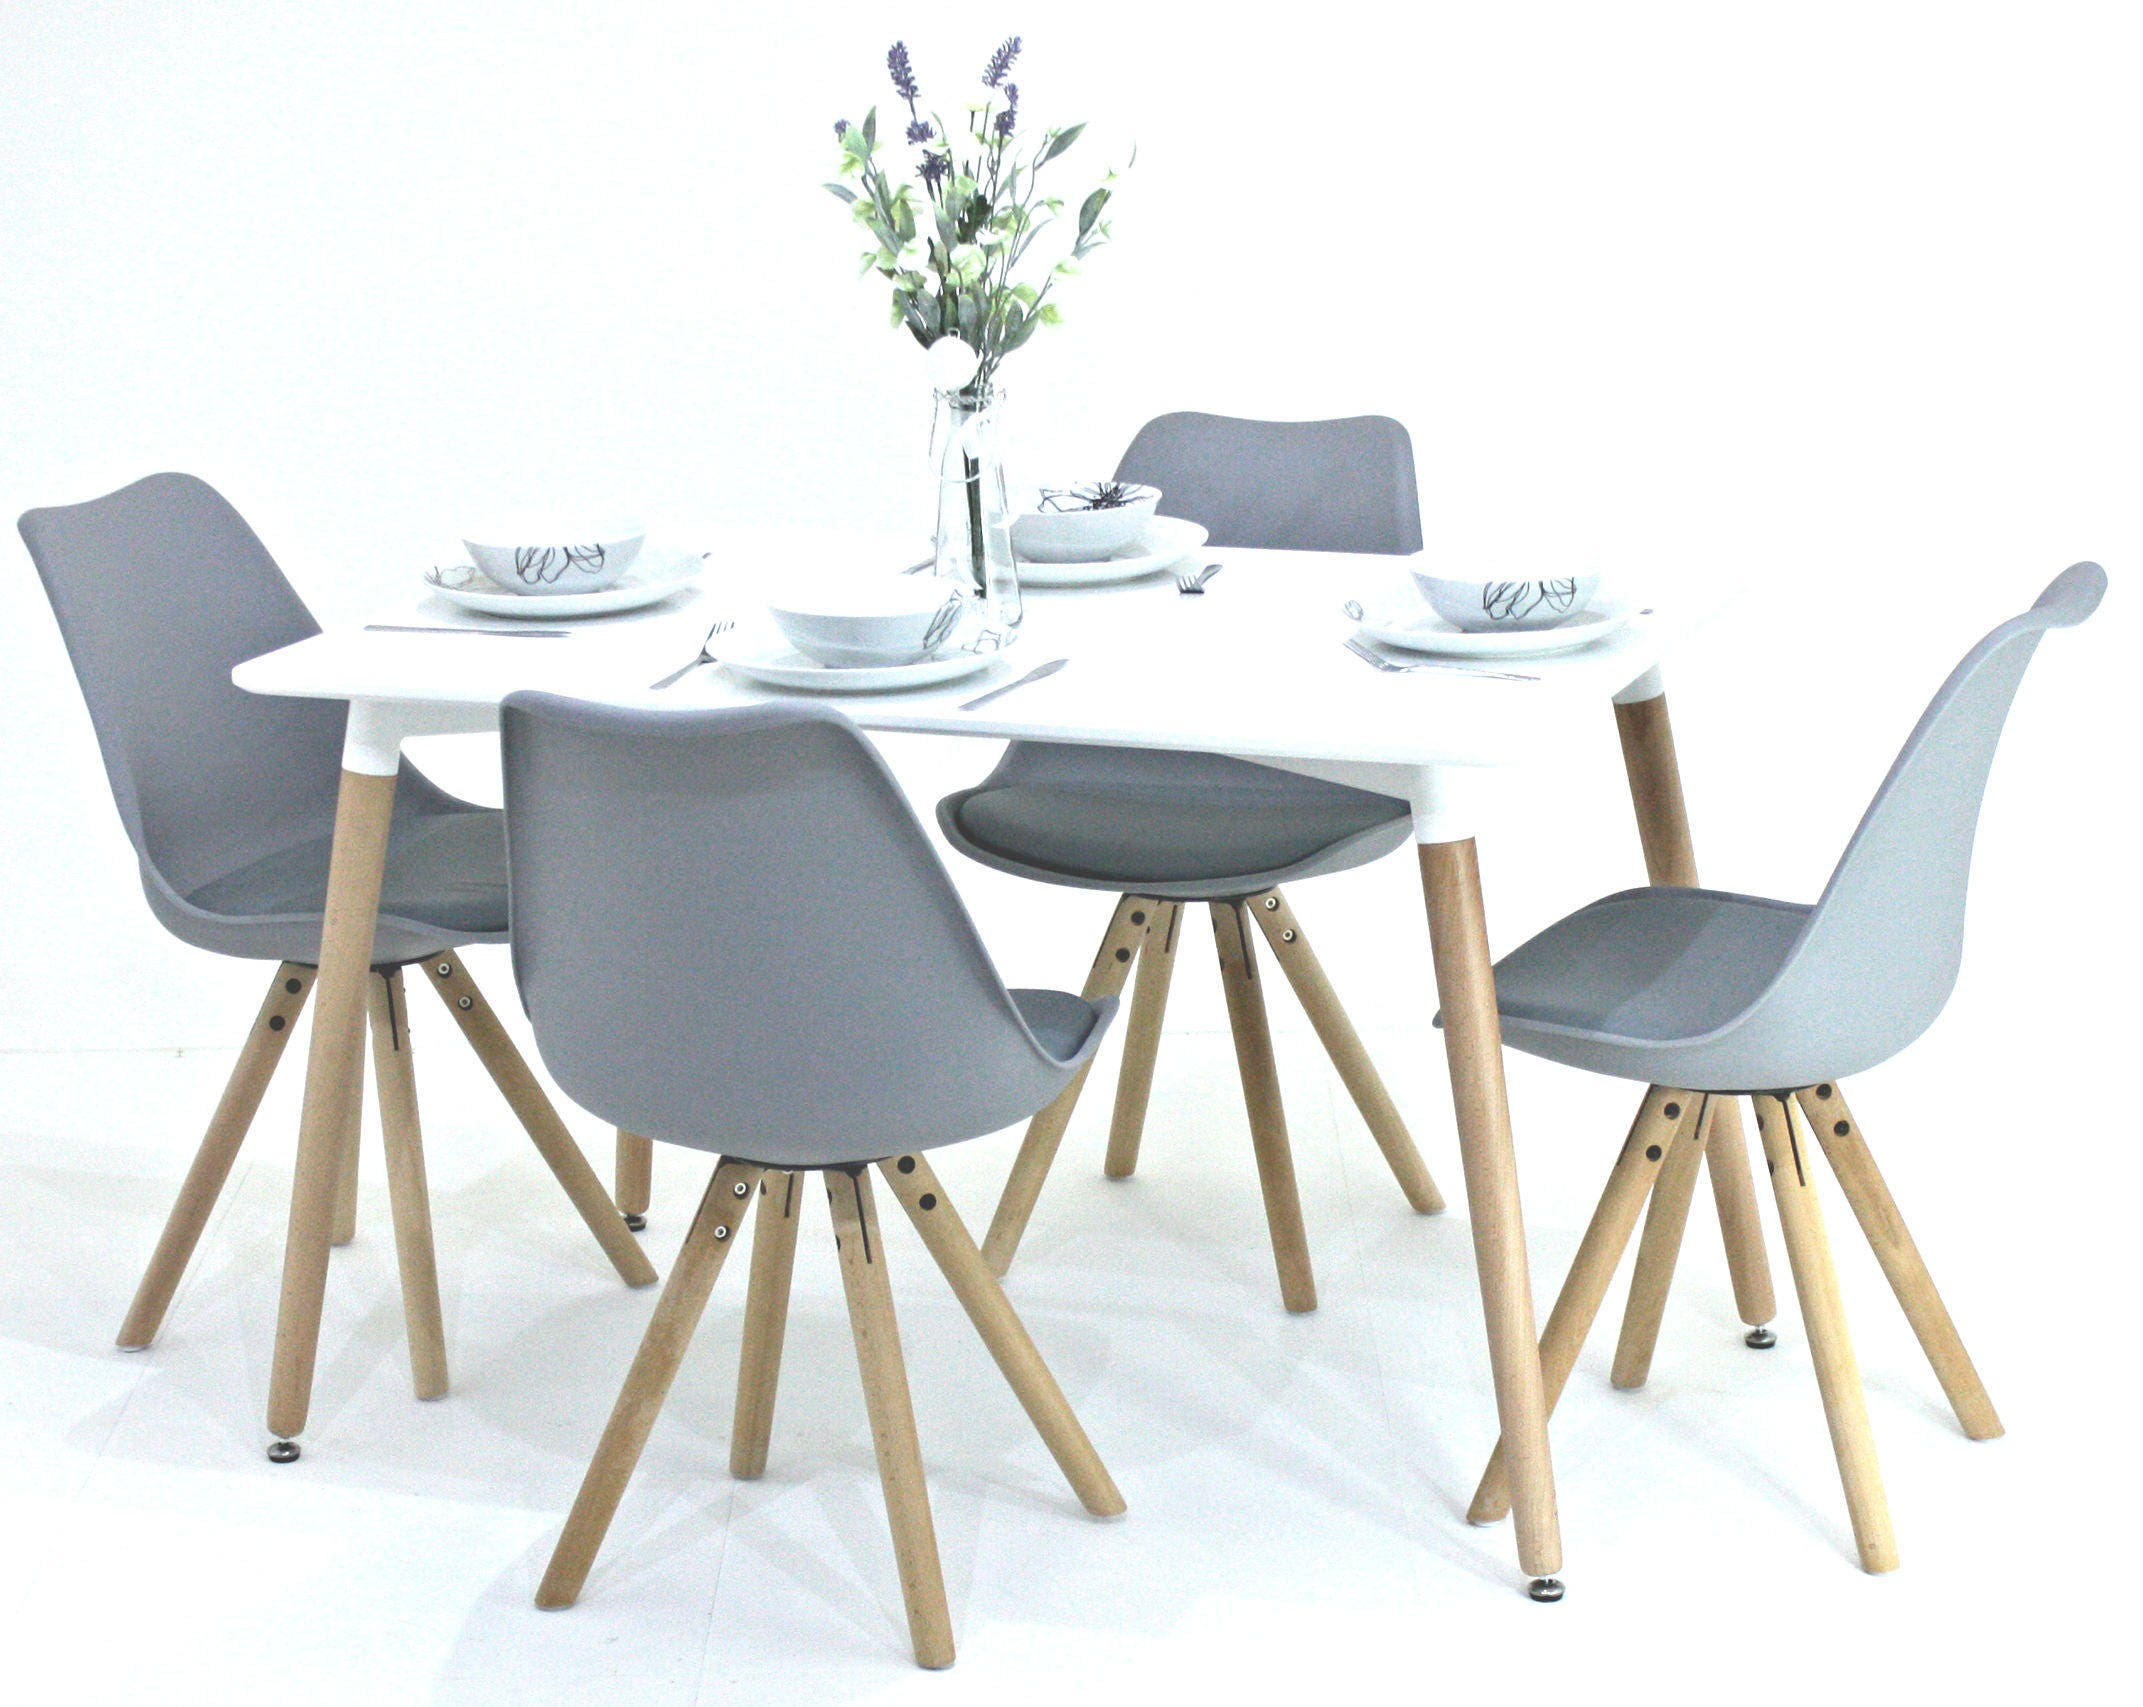 PN Homewares Sophia Dining Table and 4 Chairs Set Retro Modern Chairs Choice of Black or White Table White Black or Grey Chairs